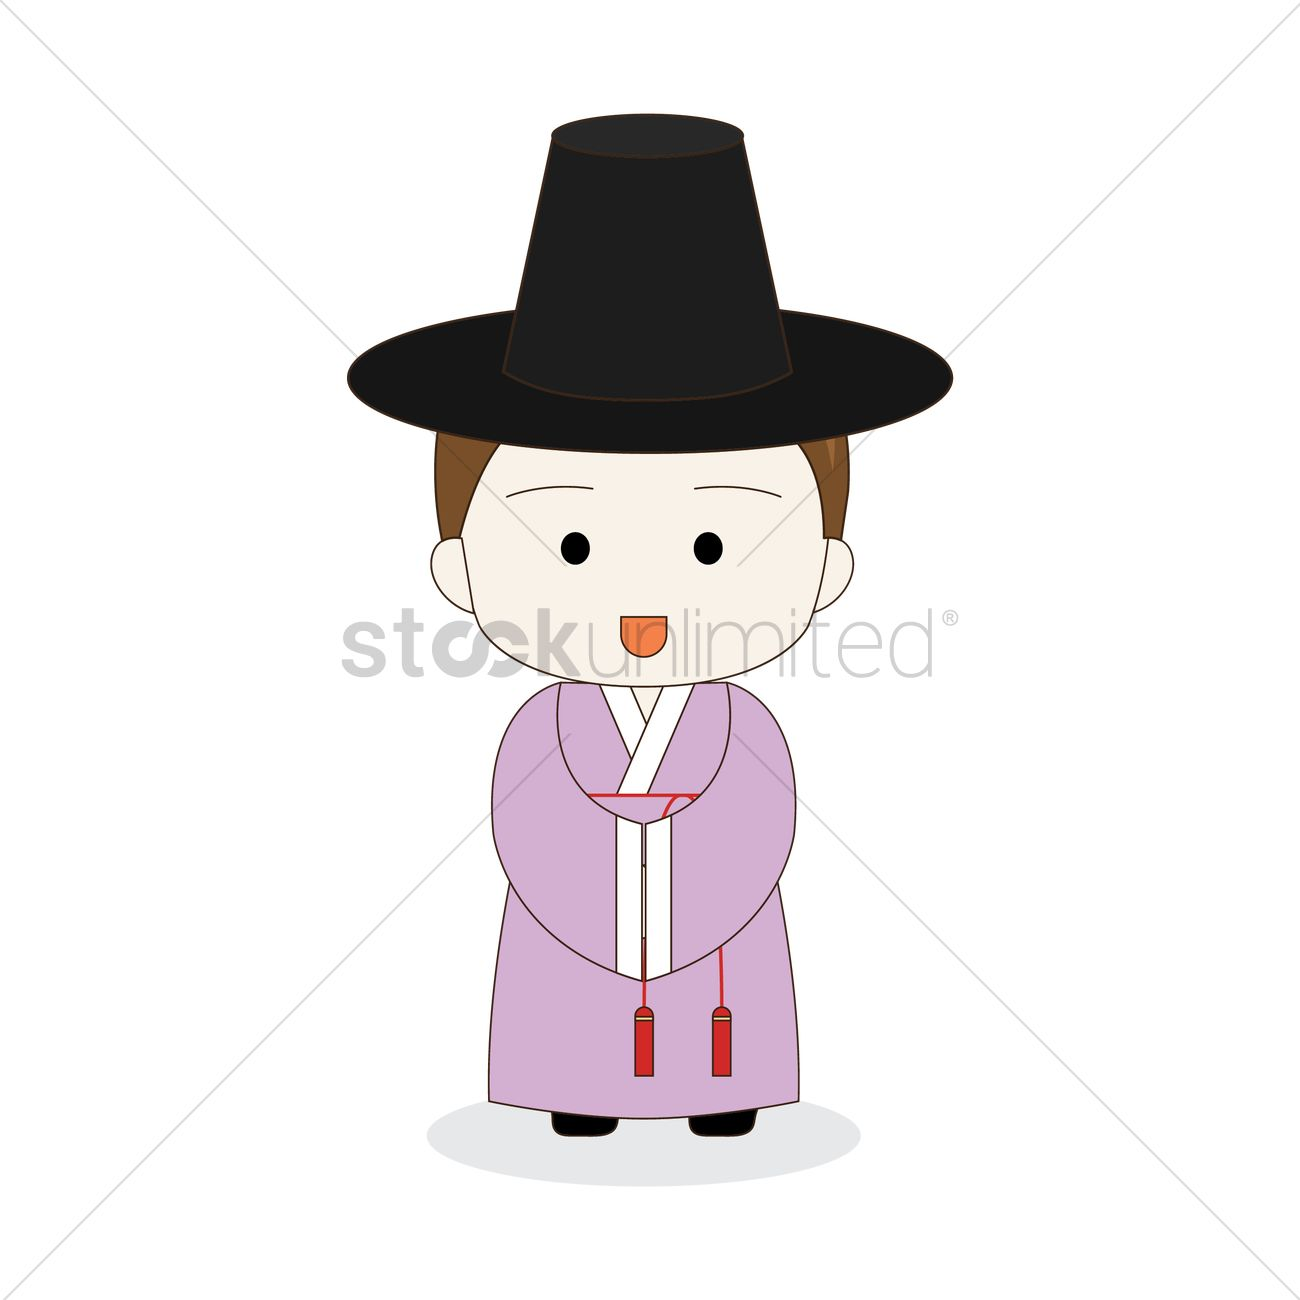 Korean Boy In Traditional Hanbok Vector Image 2014051 Stockunlimited